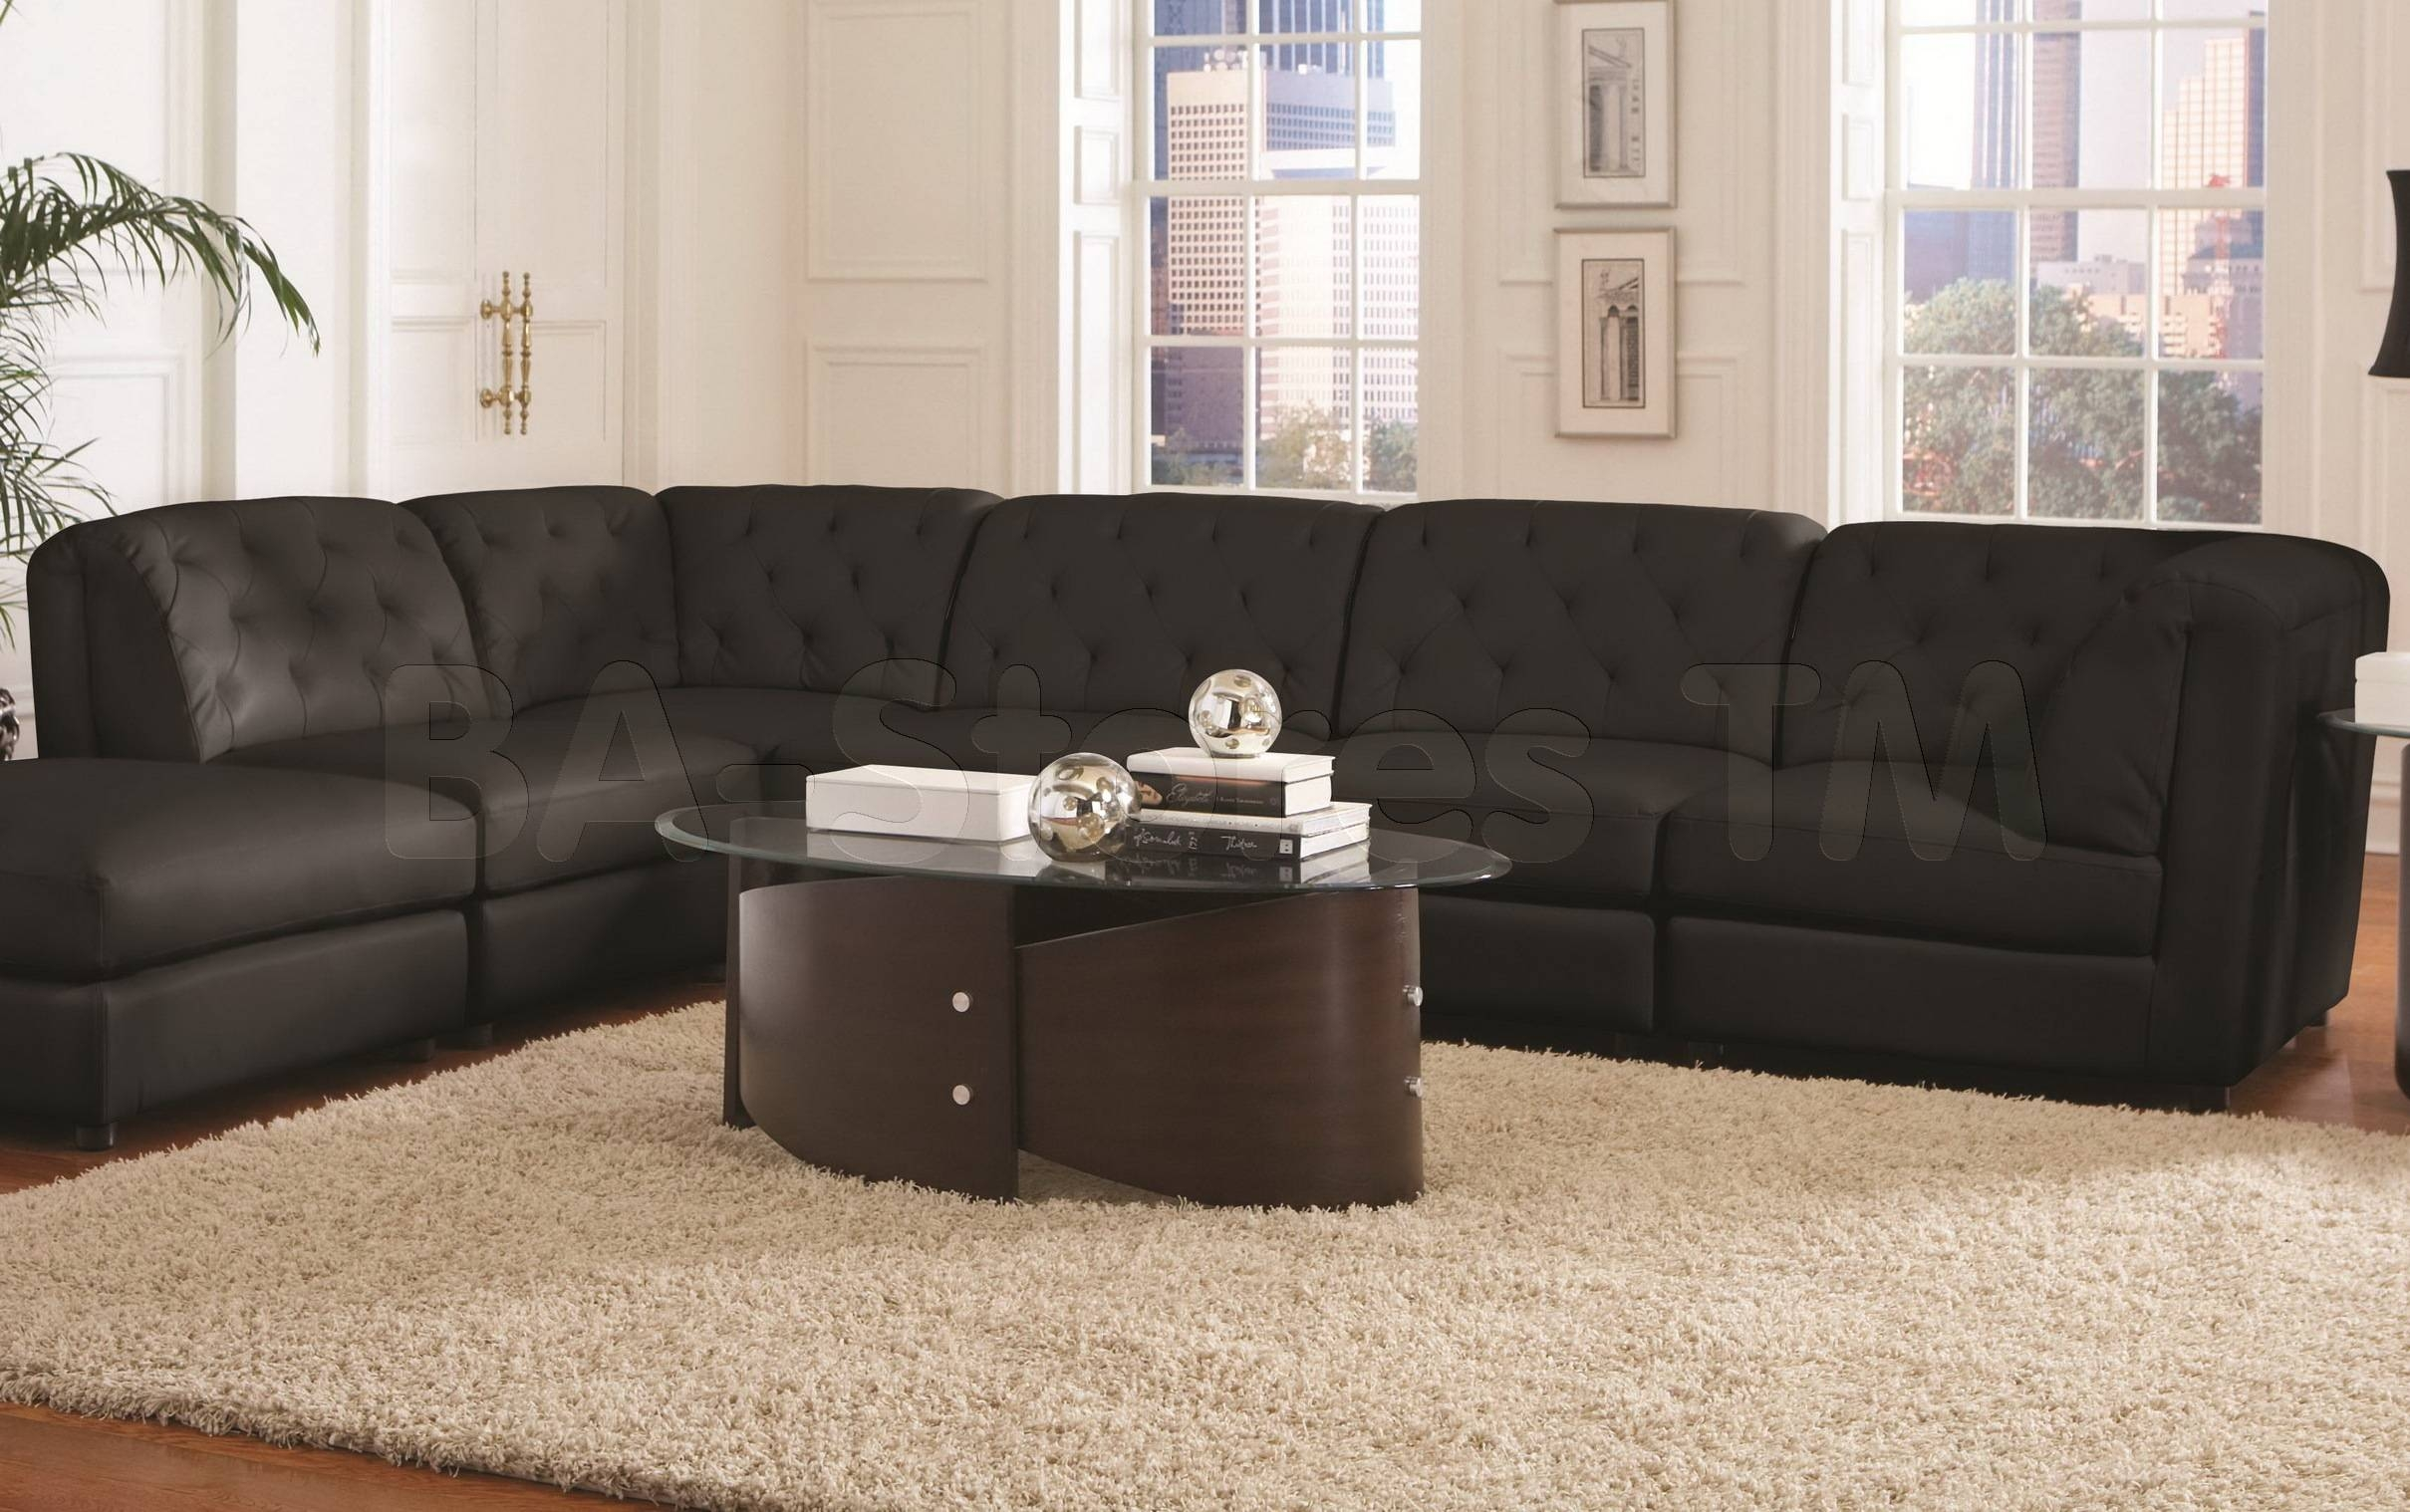 Furniture: Beautiful Sectional Sofas Cheap For Living Room for Black Sectional Sofa for Cheap (Image 4 of 30)